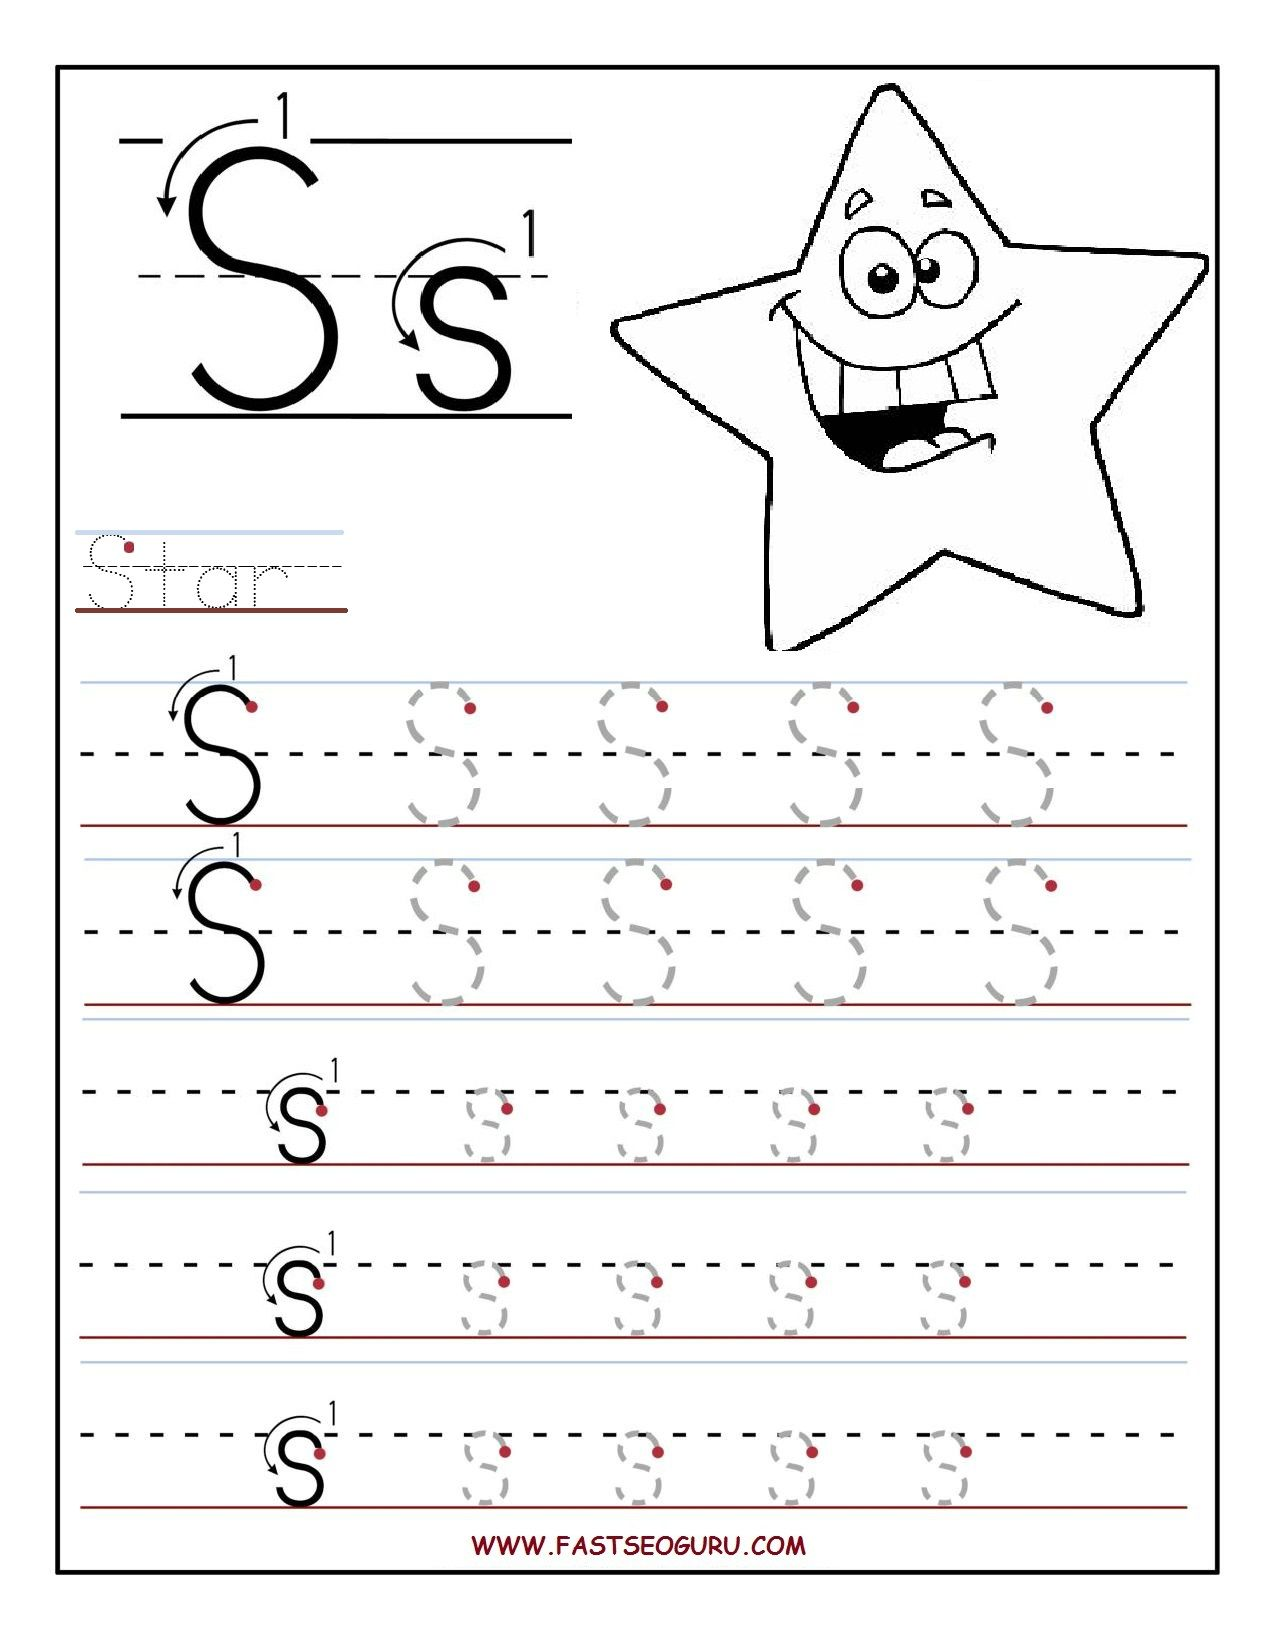 Printable Cursive Alphabet Worksheets Abitlikethis